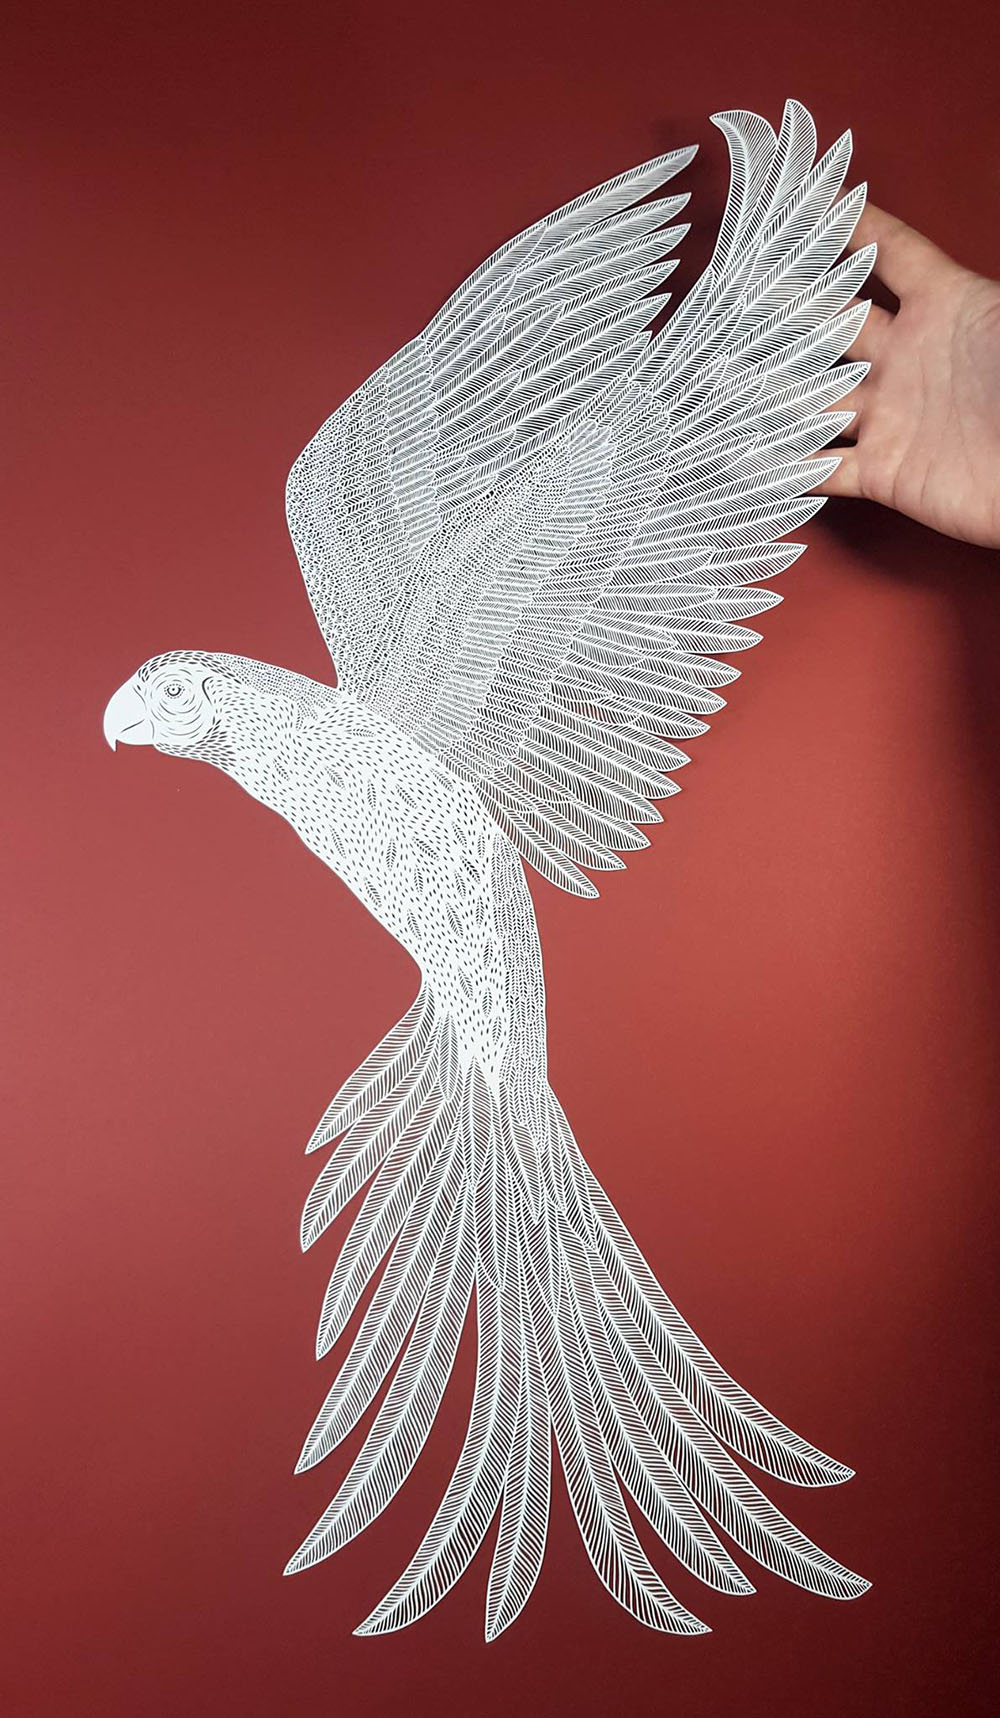 Superb Cut Paper Artworks by Pippa Dyrlaga